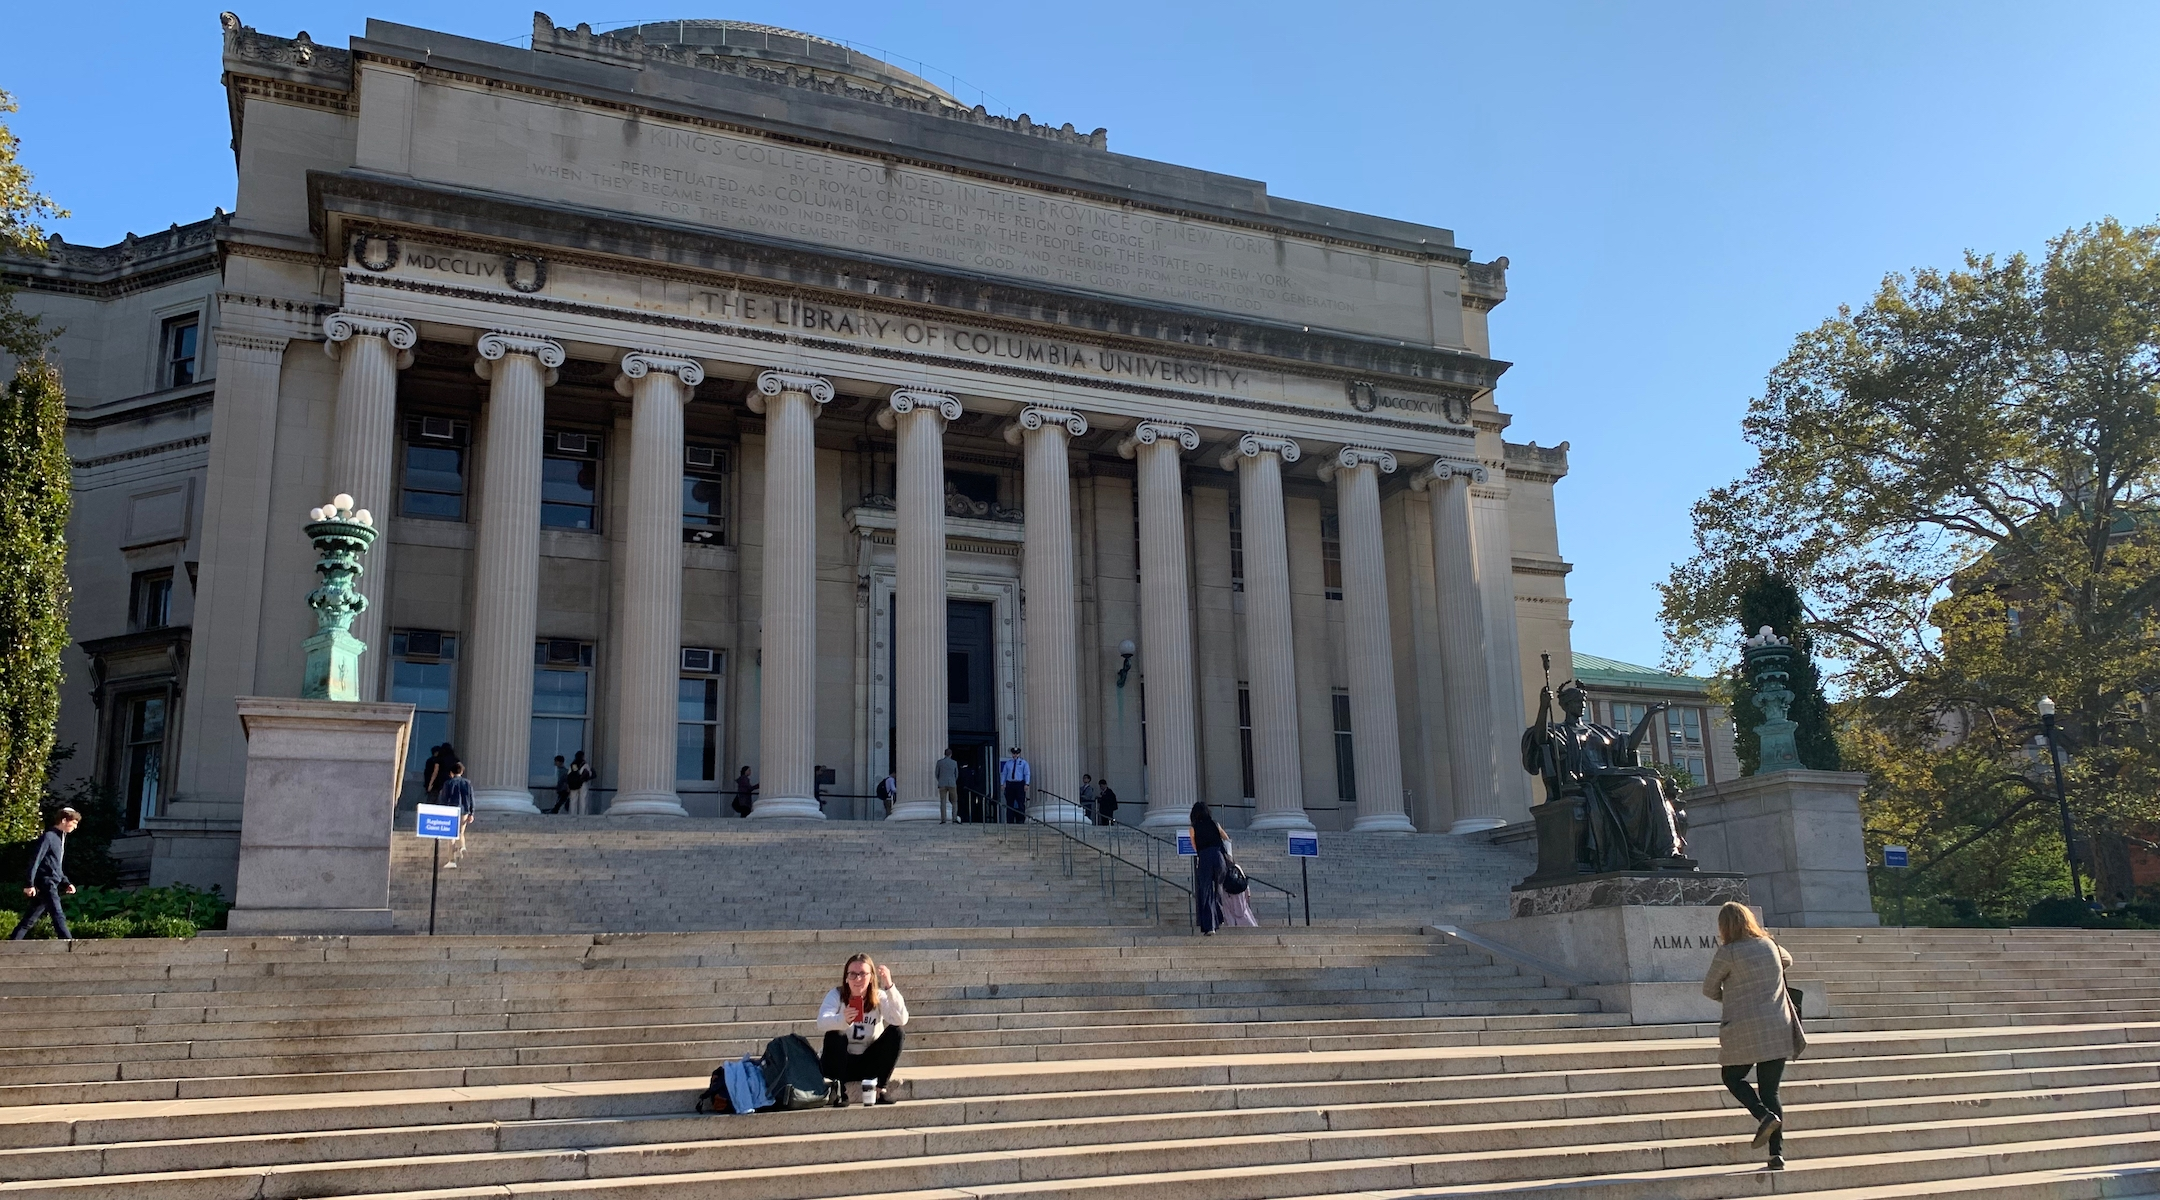 Columbia University accused of anti-Semitic discrimination in first case related to Trump executive order